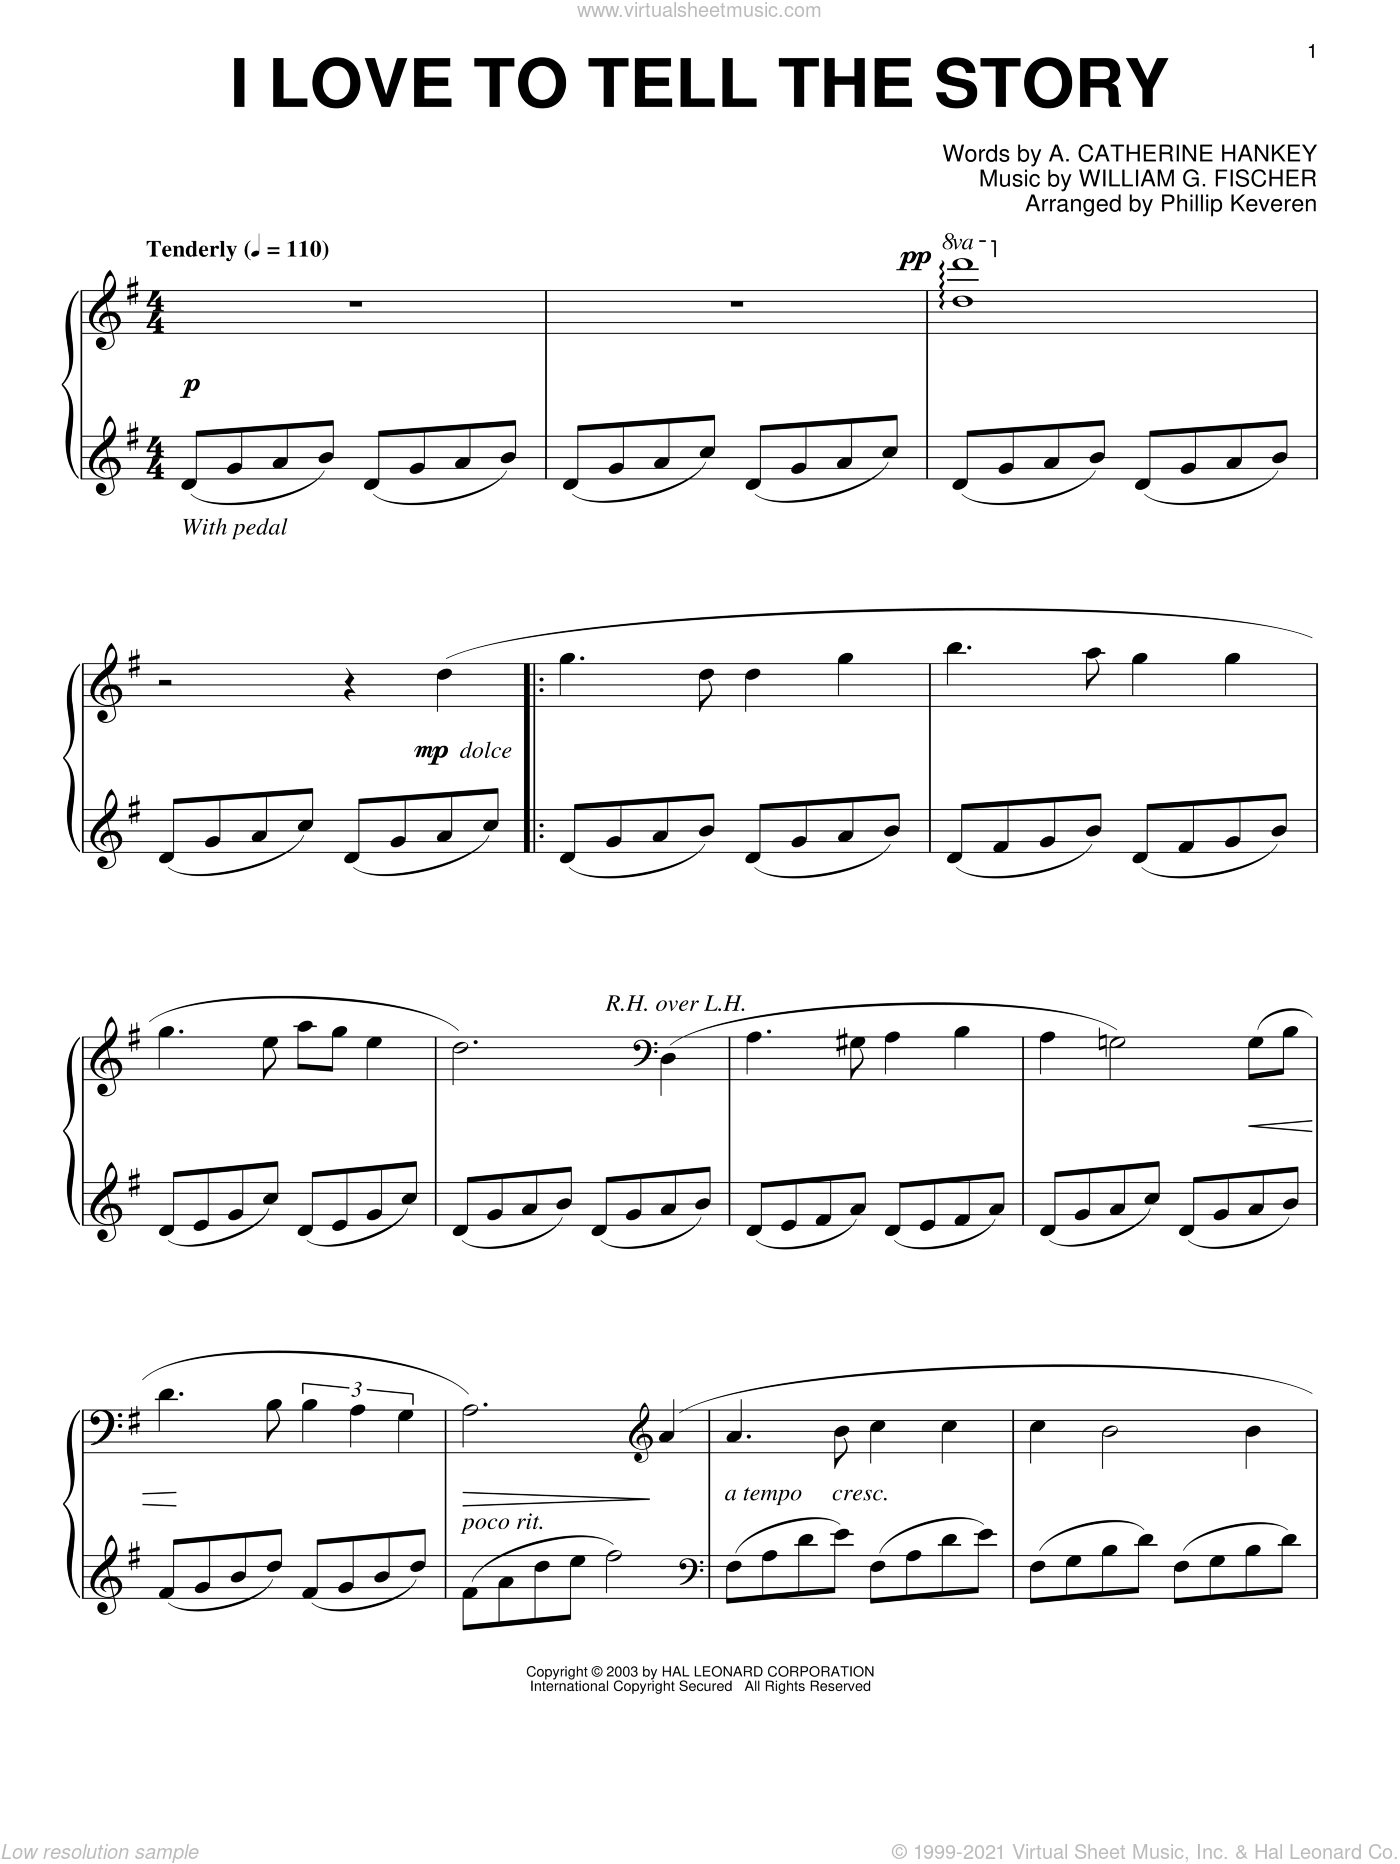 I Love To Tell The Story sheet music for piano solo by William G. Fischer